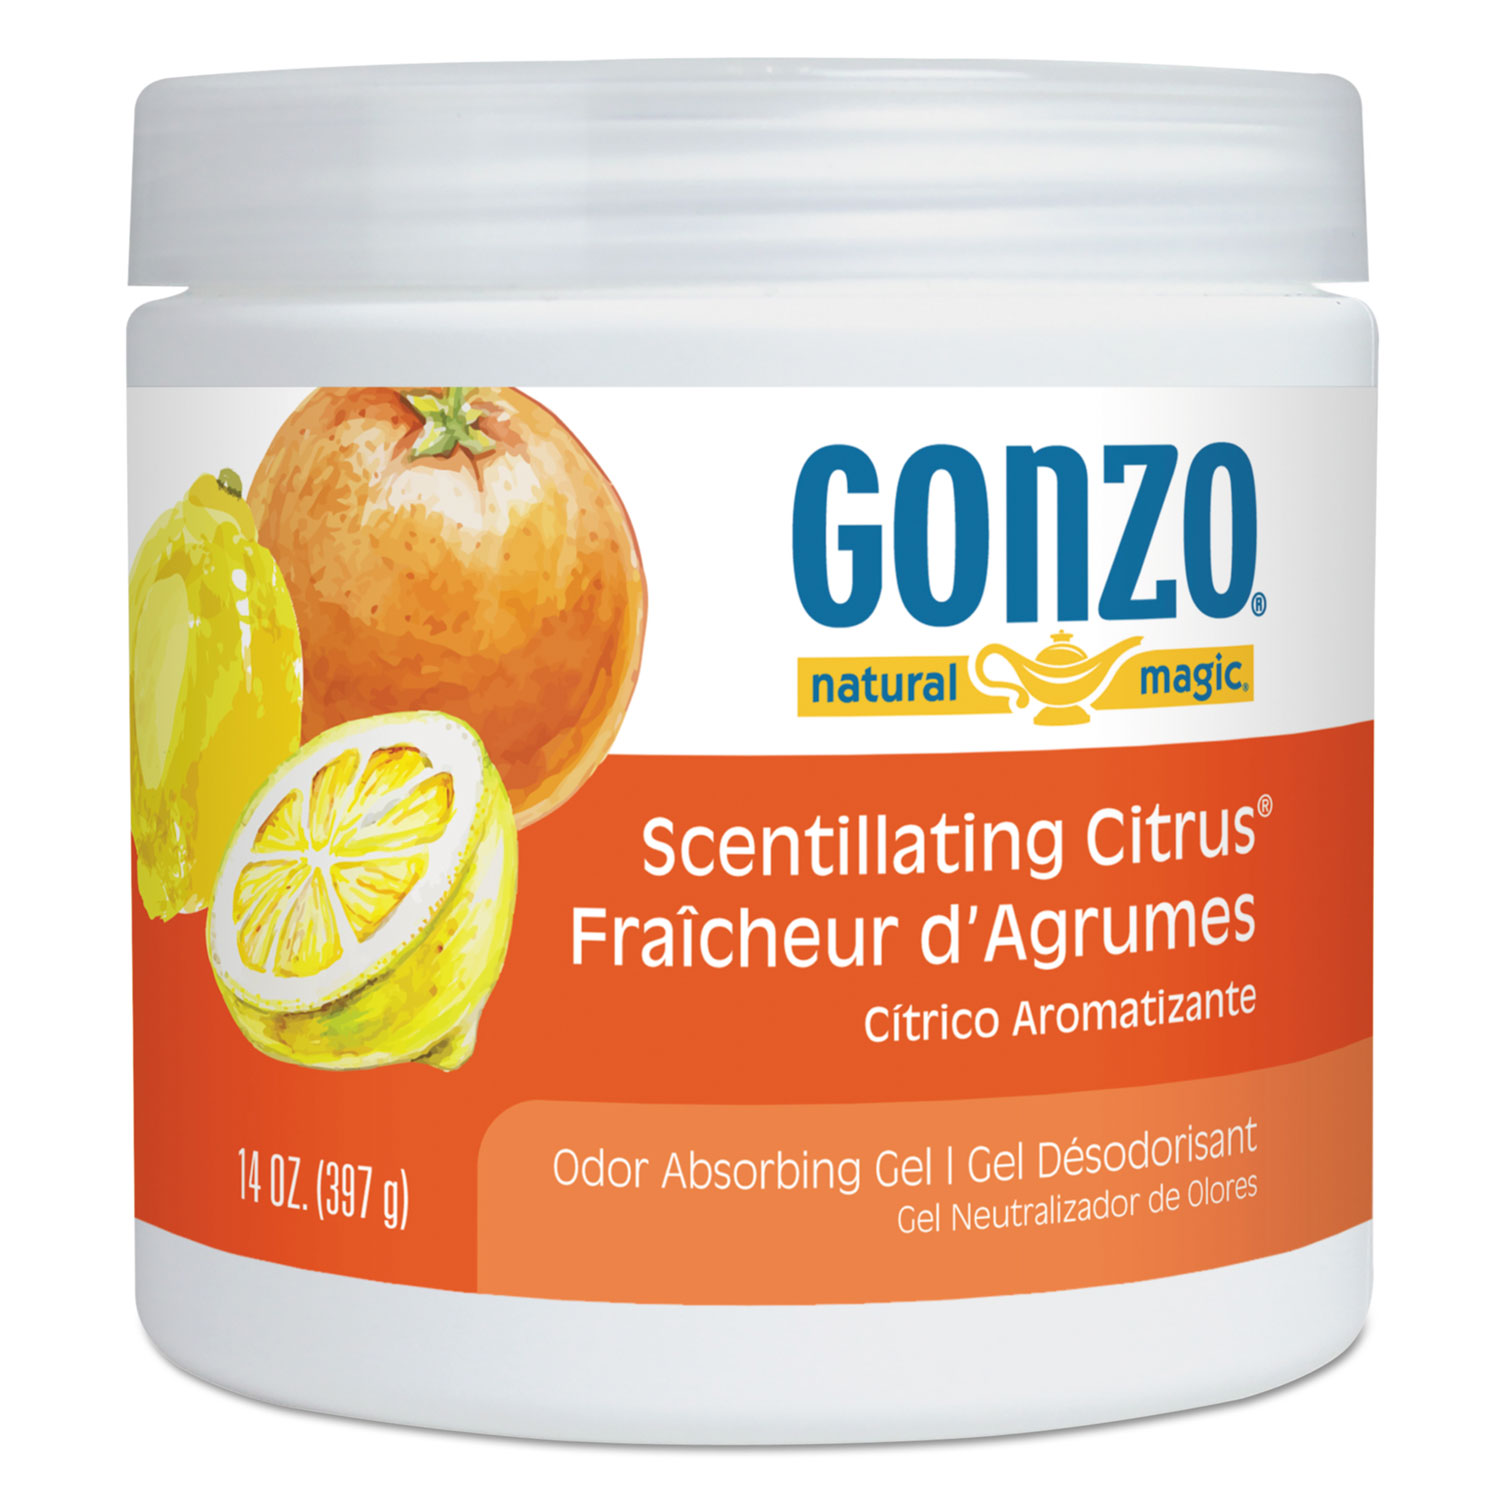 Odor Absorbing Gel, Scentillating Citrus, 14 oz Jar